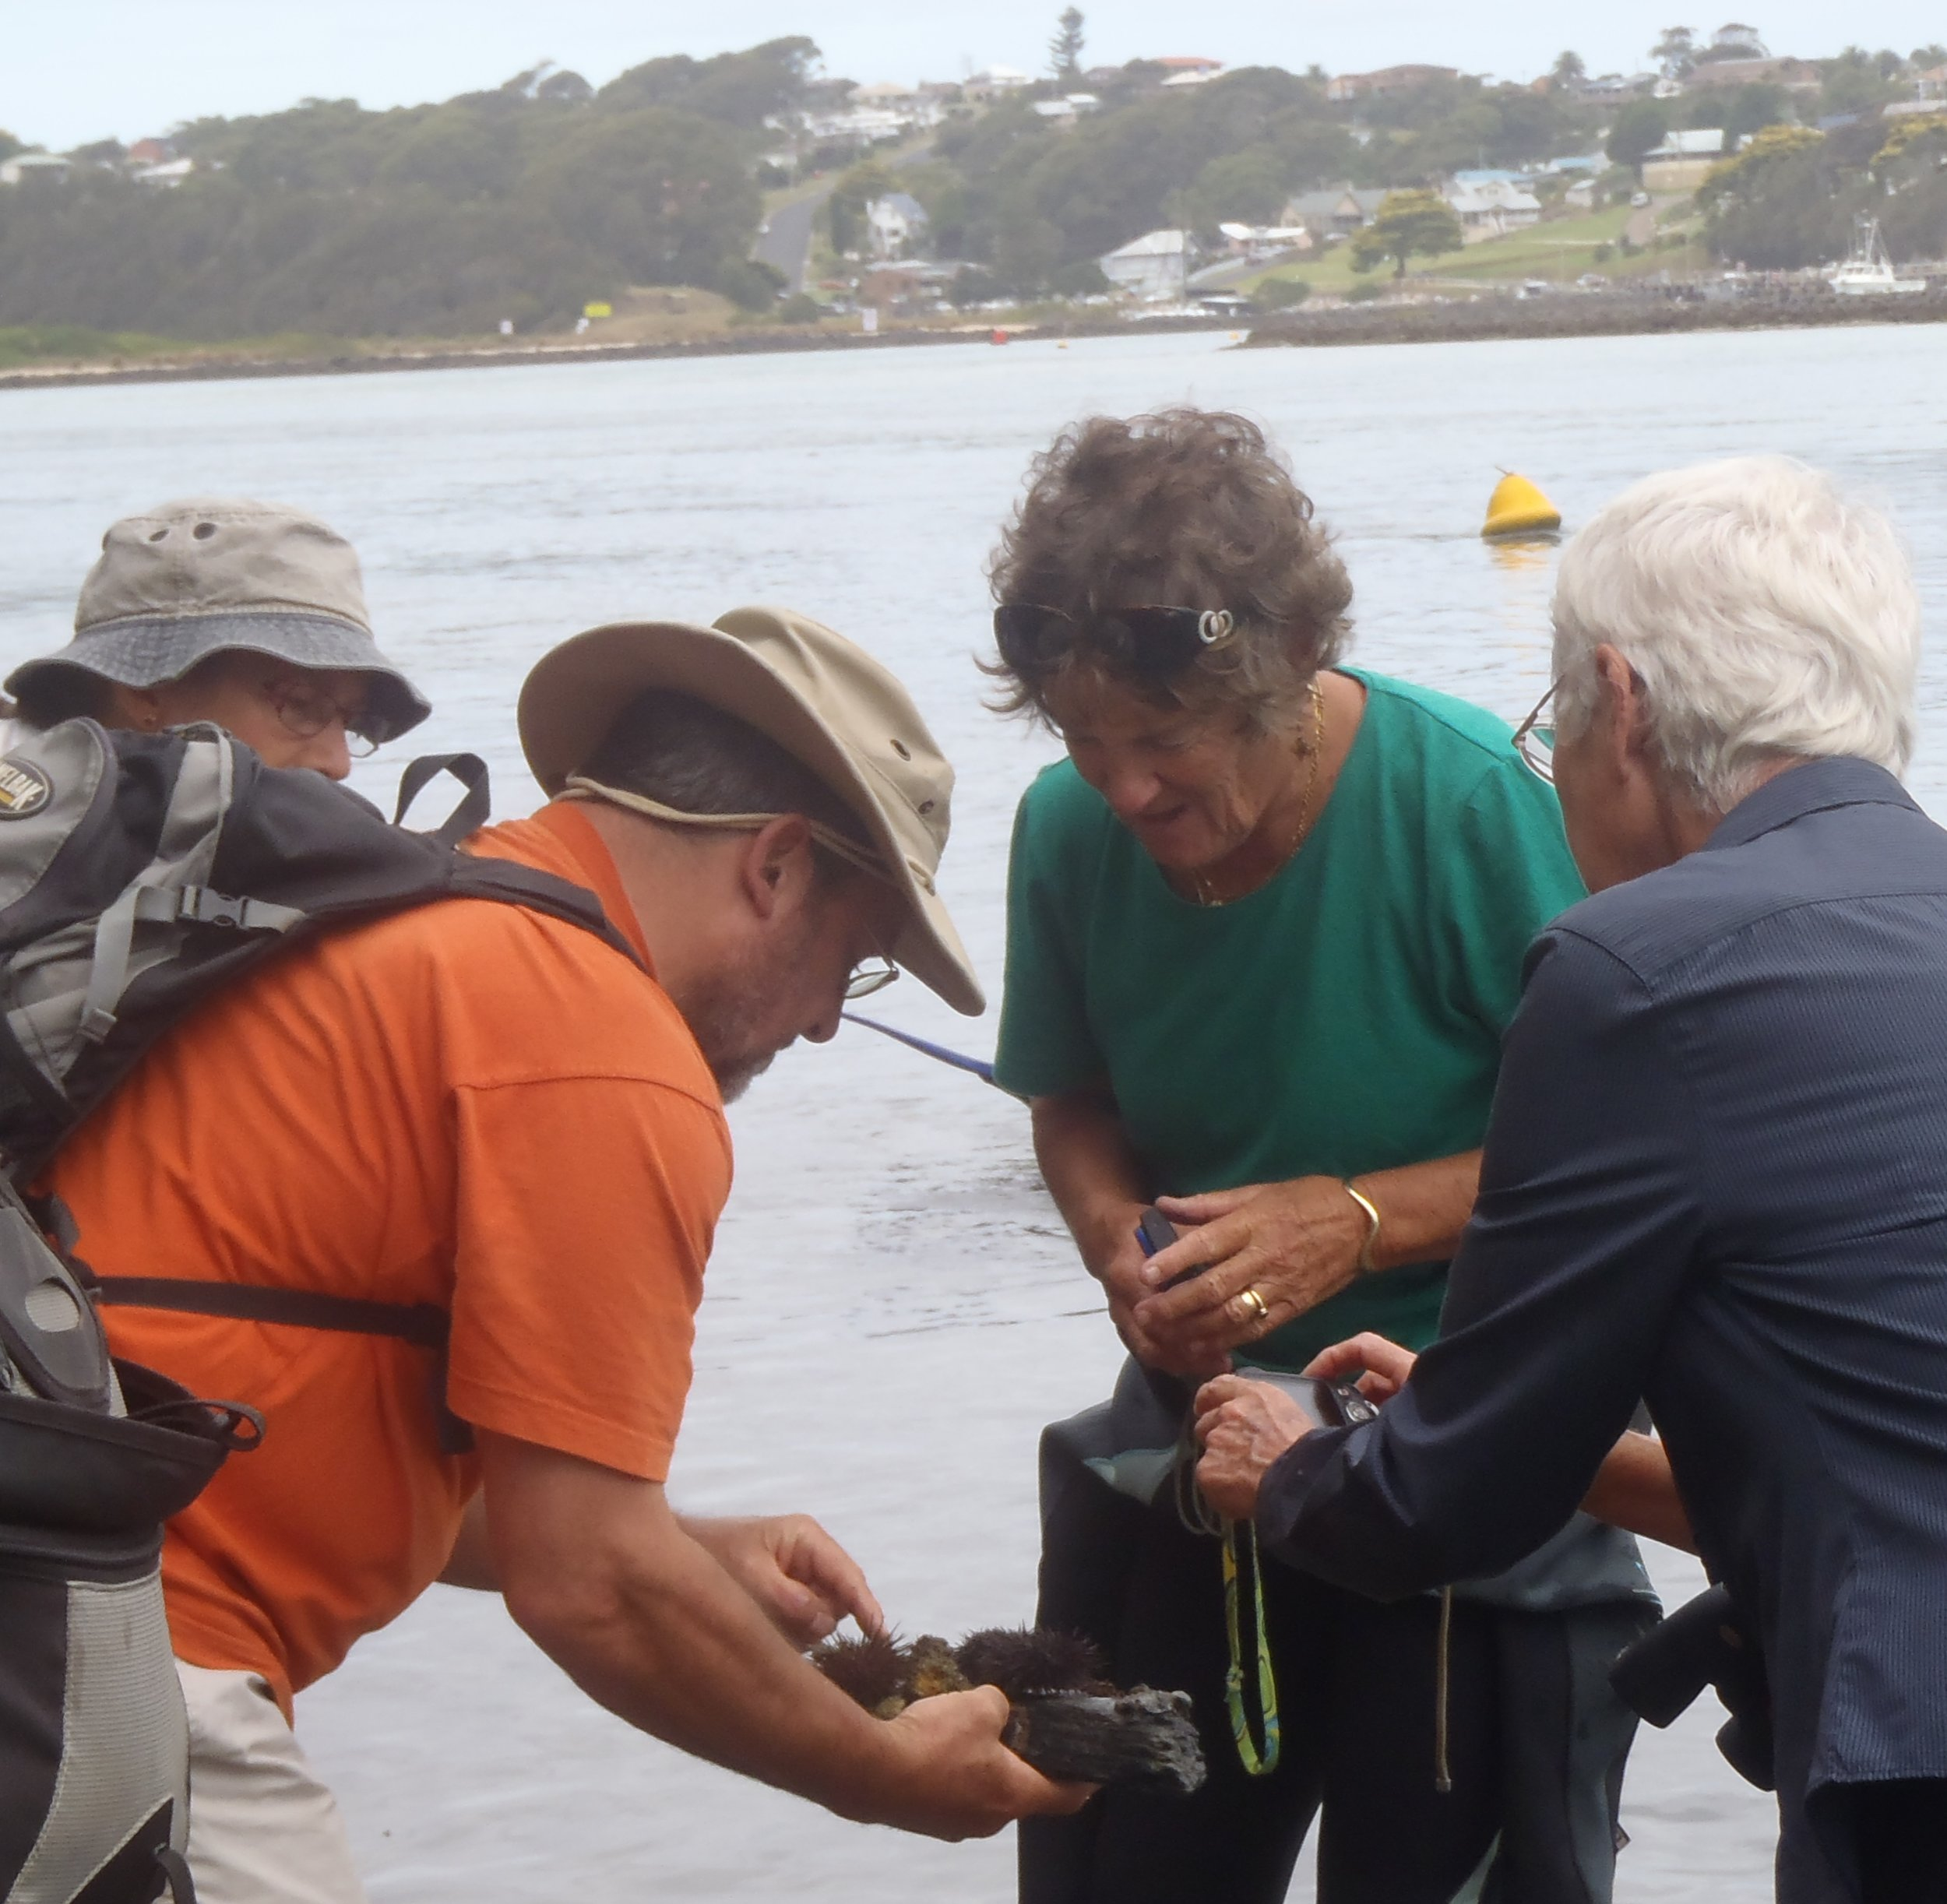 Field work at Narooma